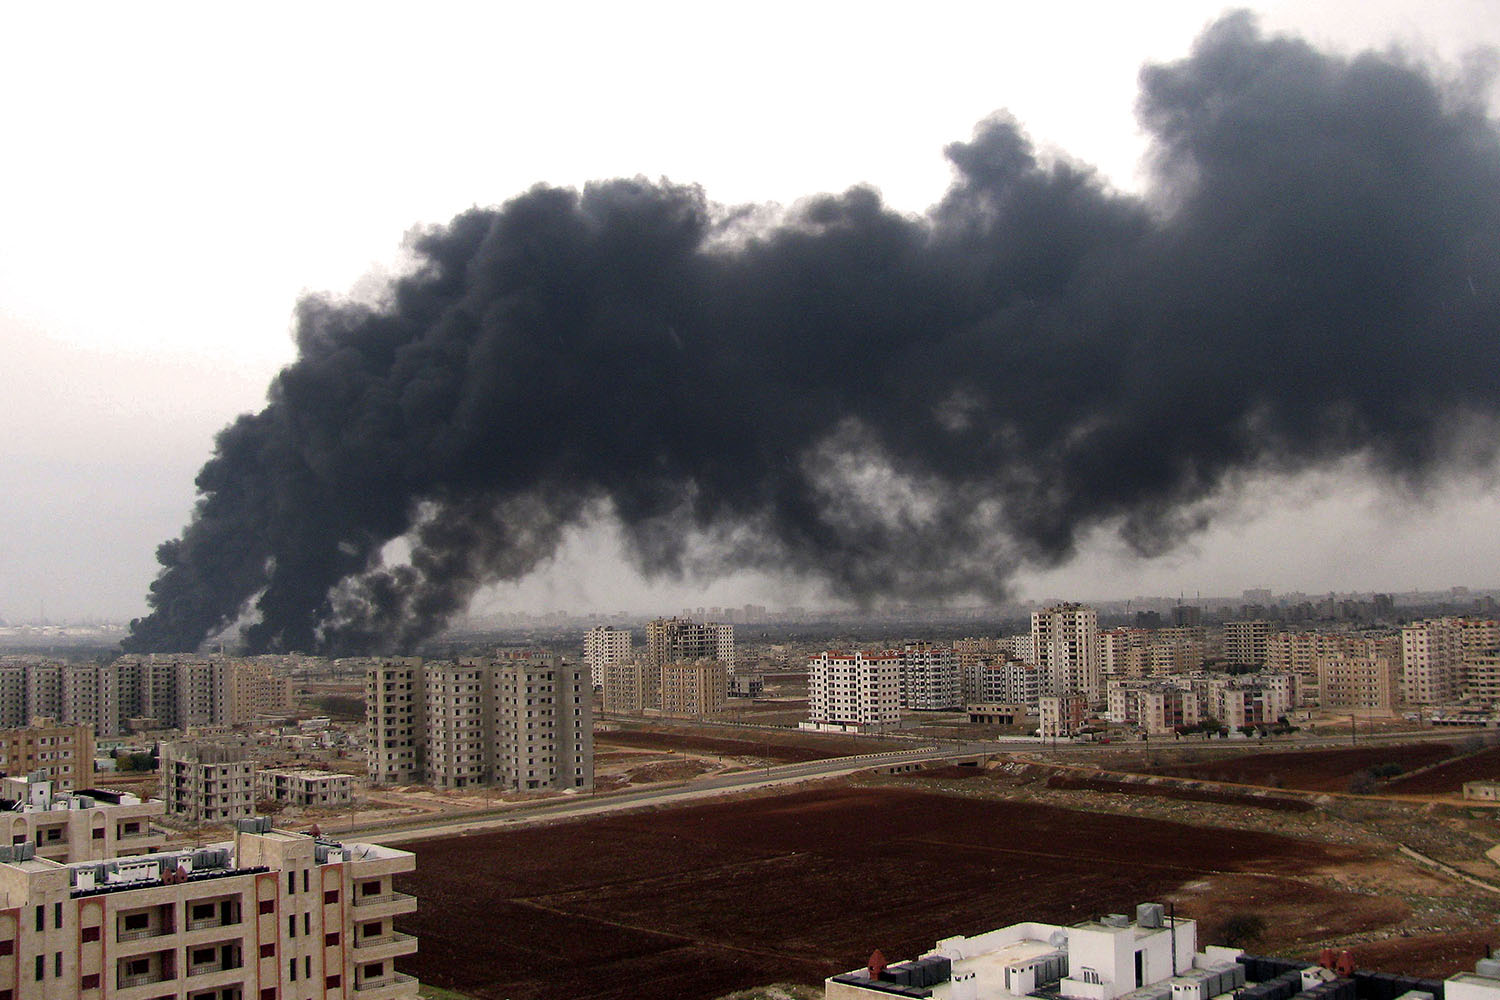 Dec. 8, 2011. A photo released by Syrian news agency SANA shows smoke rising behind residential buildings after the bombing of a pipeline transporting oil to the refinery in Homs, Syria.